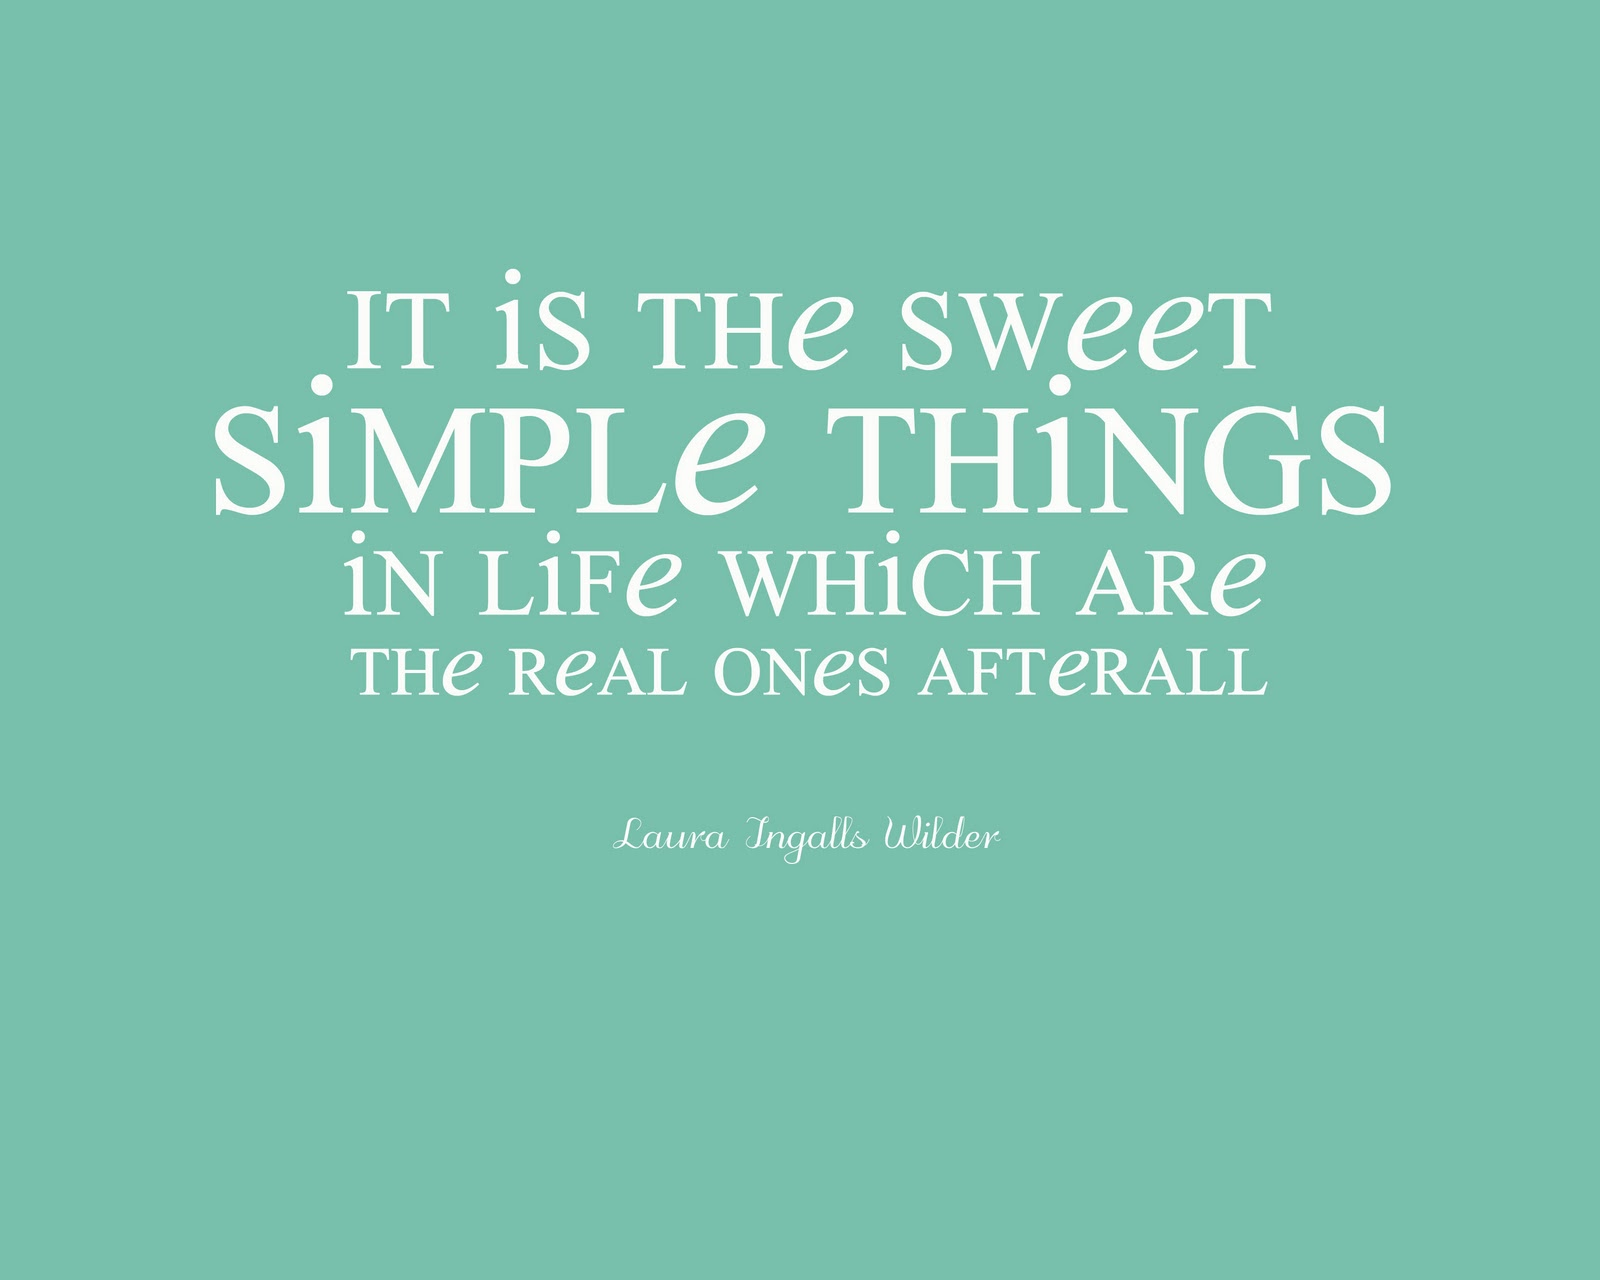 Quotes about Simple Things In Life (5 quotes)